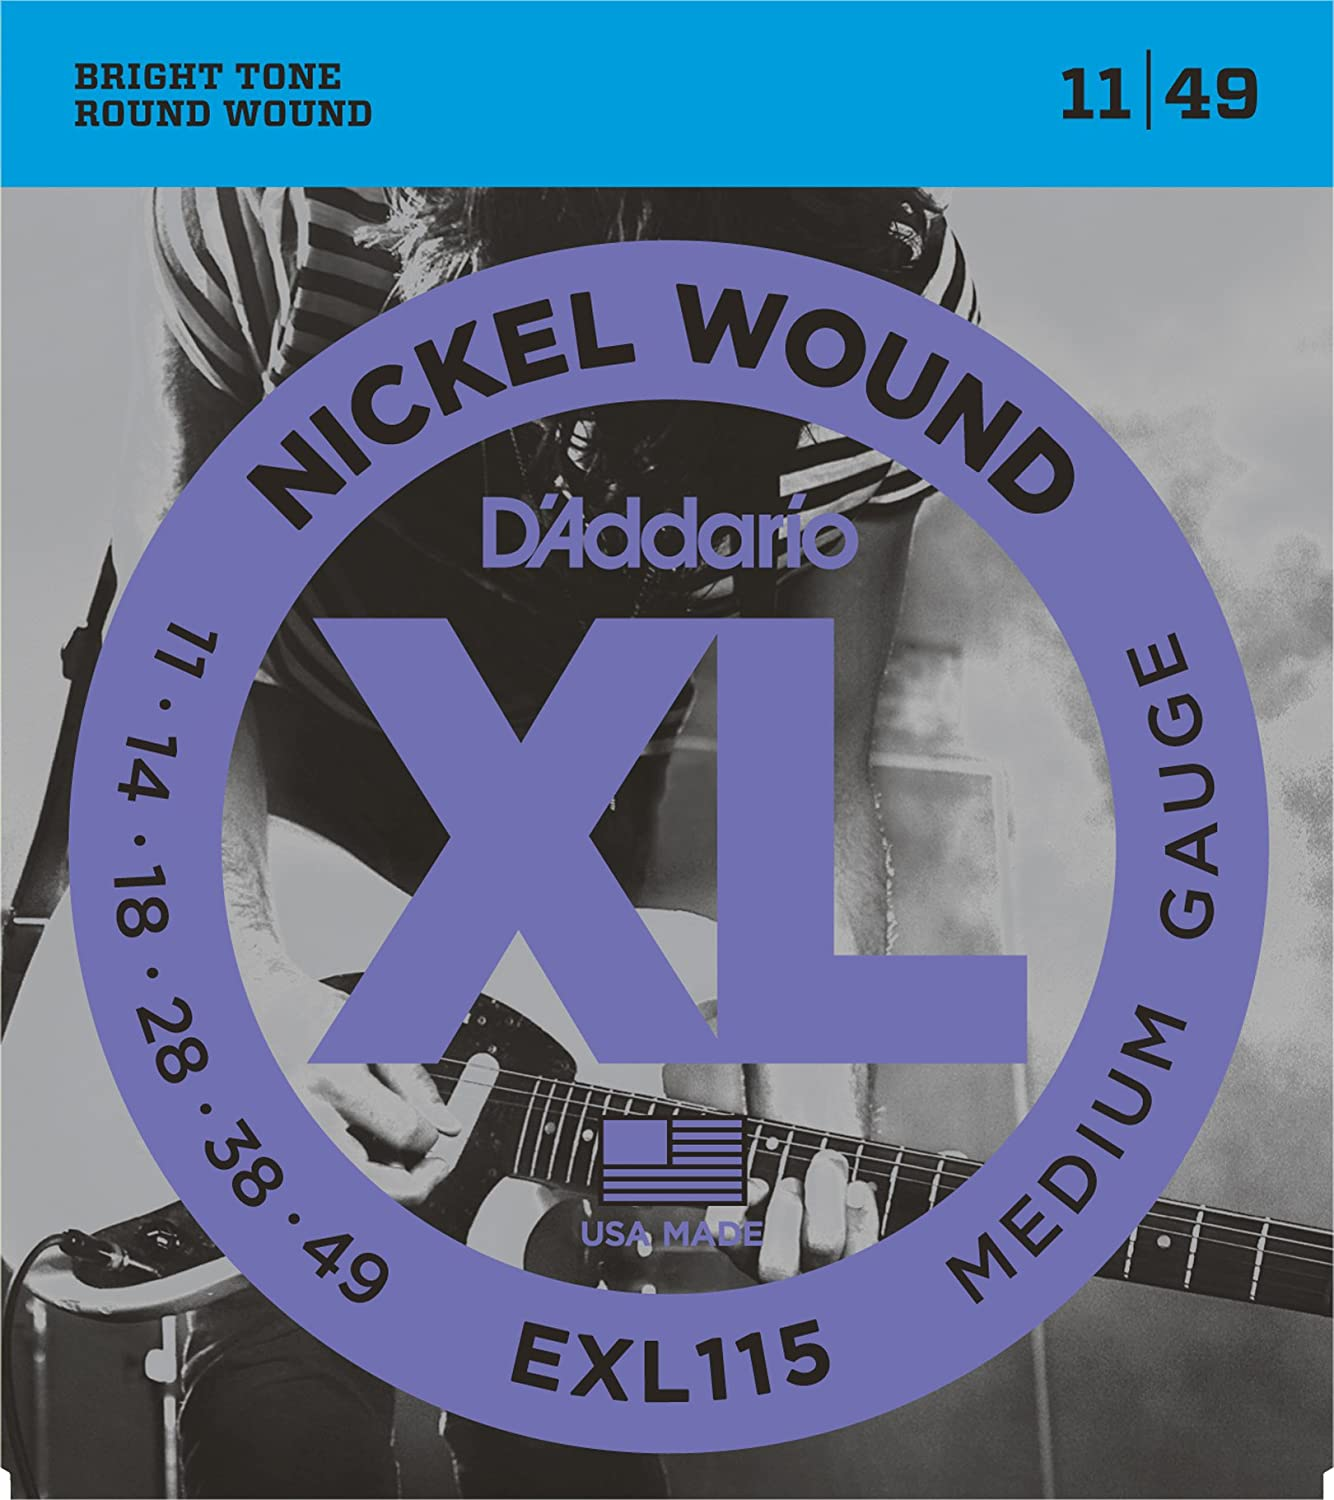 D'Addario EXL158 Nickel Wound Electric Guitar Strings, Baritone Light, 13-62 D' Addario